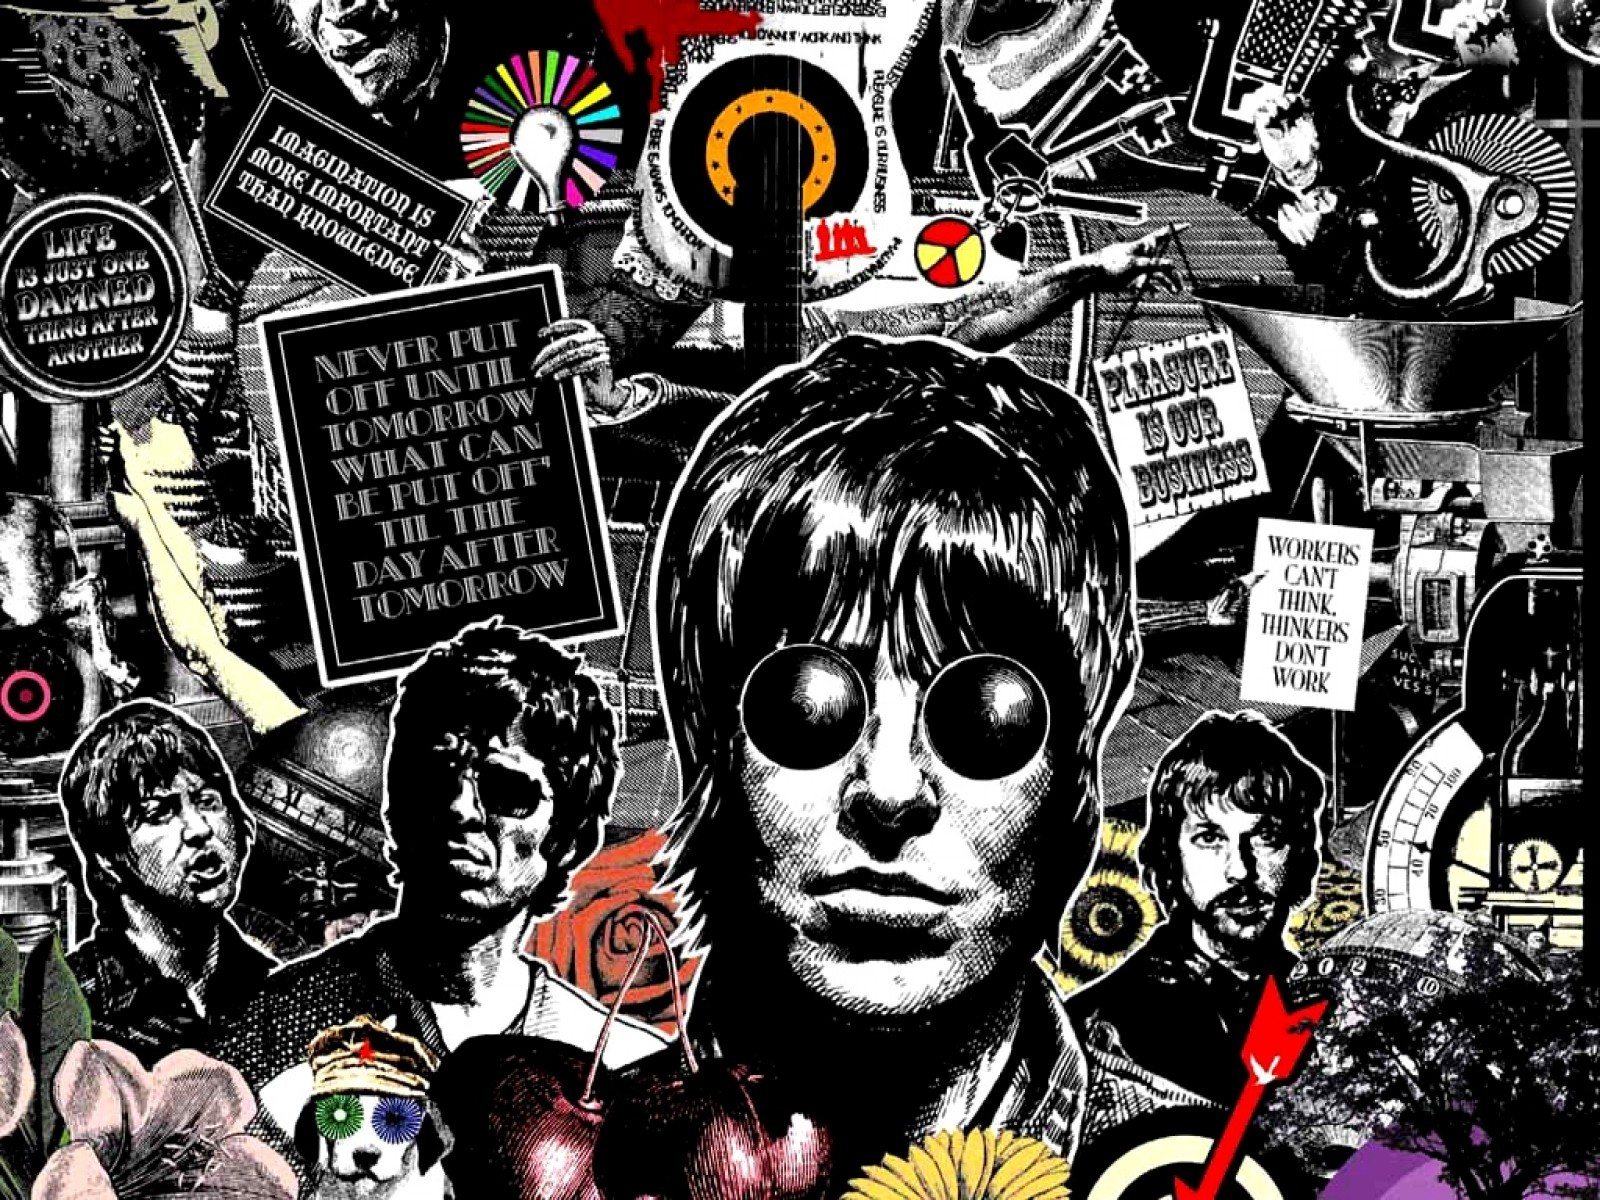 Iphone Collage Wallpaper Maker On Repeat Tbt Edition Oasis Quot Wonderwall Quot Theurbanrealist